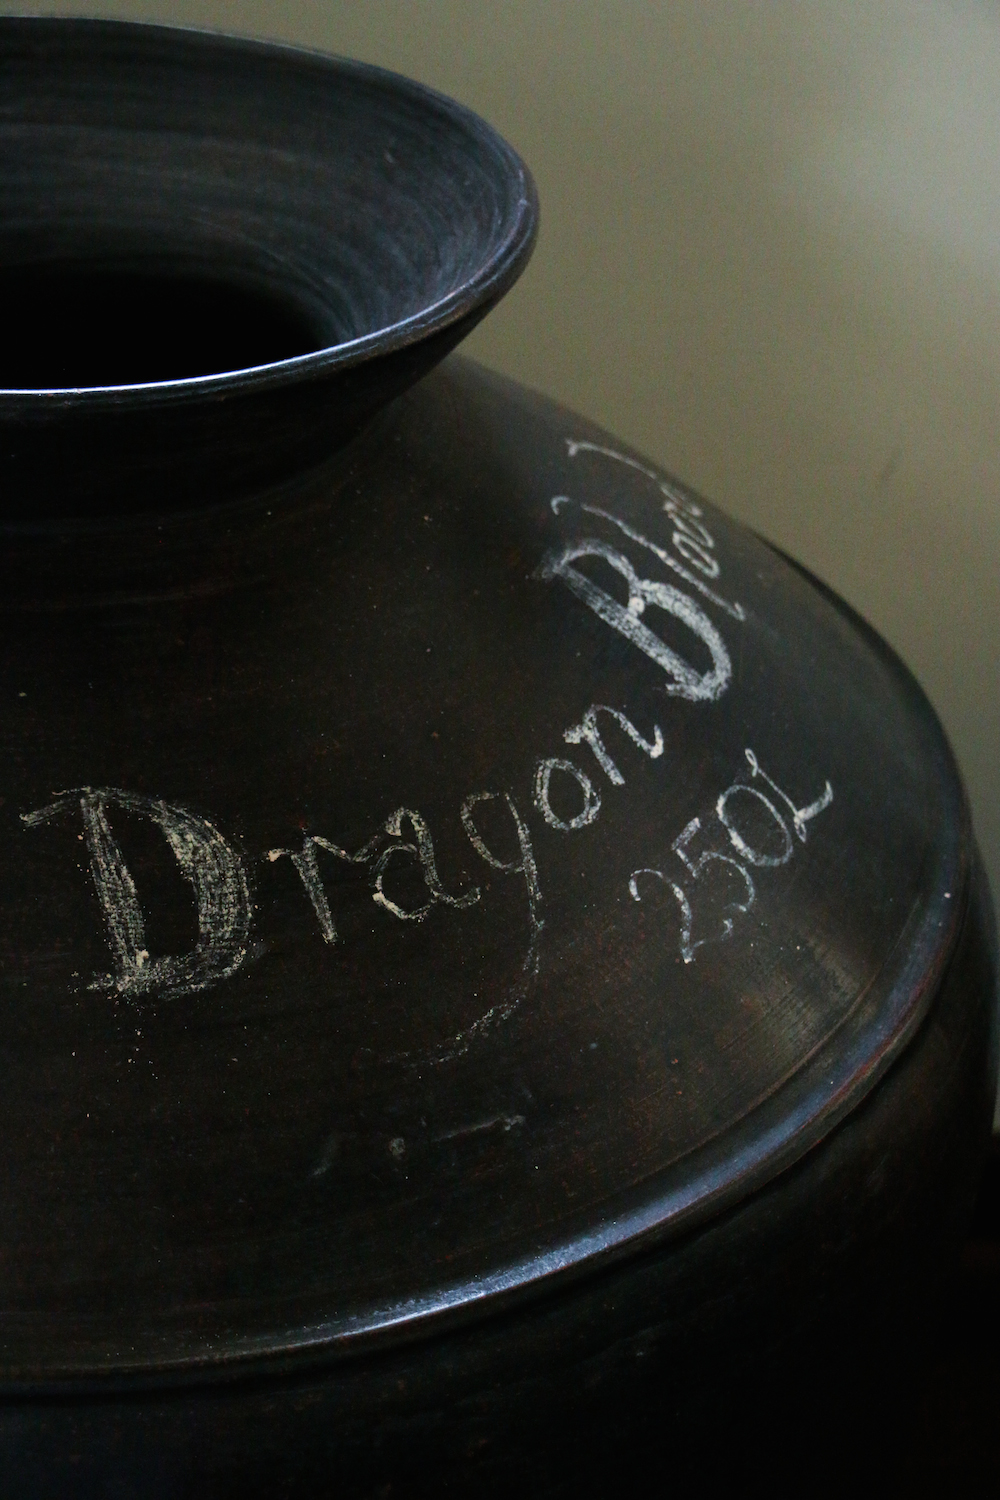 harry potter hogwarts dinner party vat of dragon blood